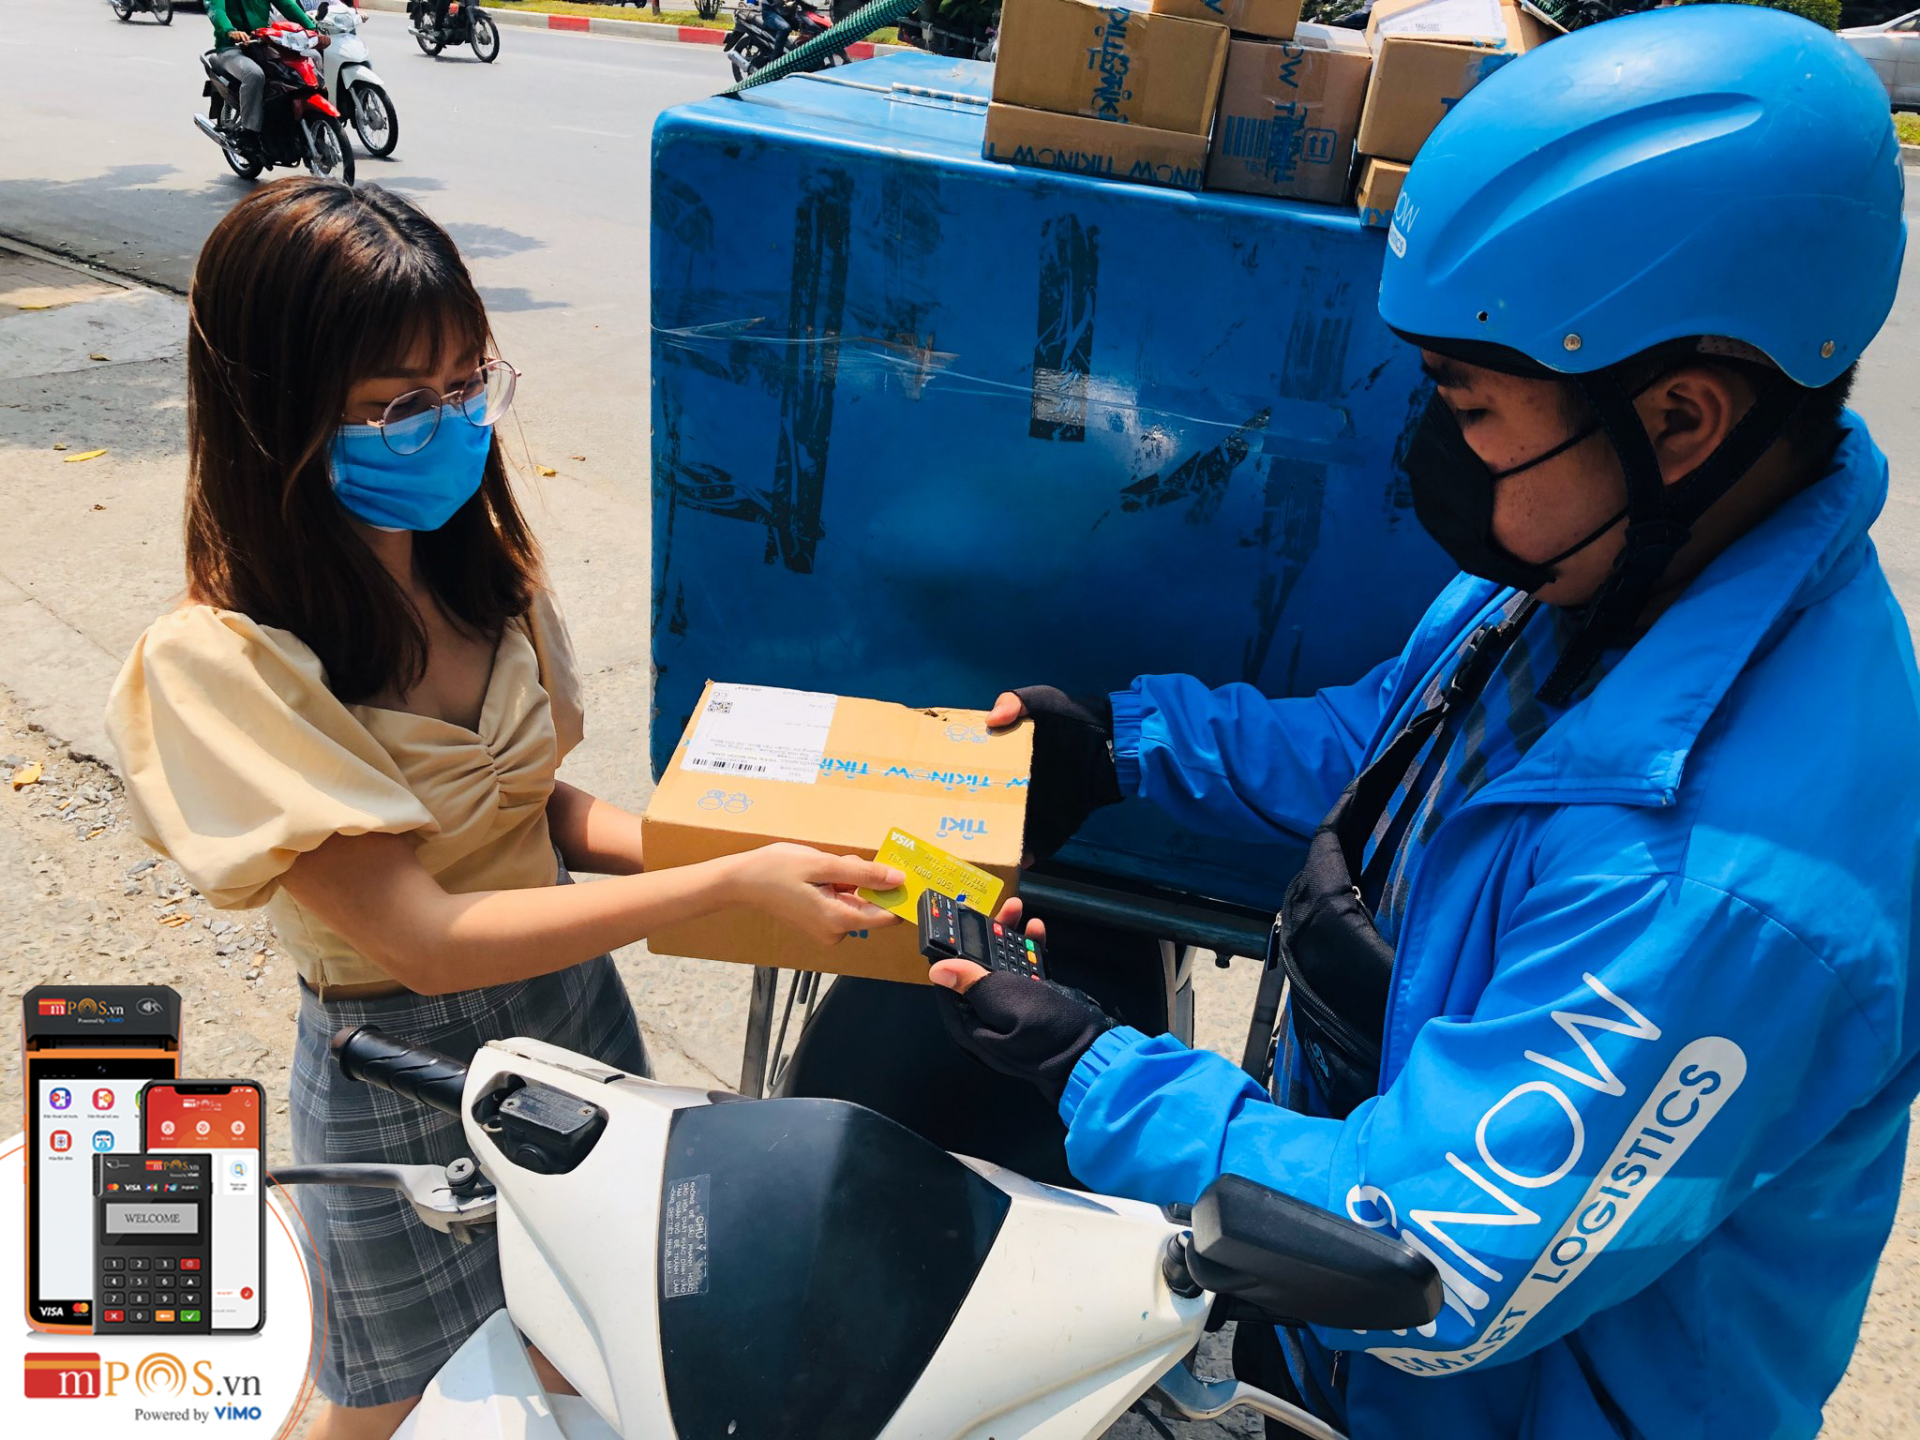 visa and nextpay sign mou to promote cashless payments in vietnam